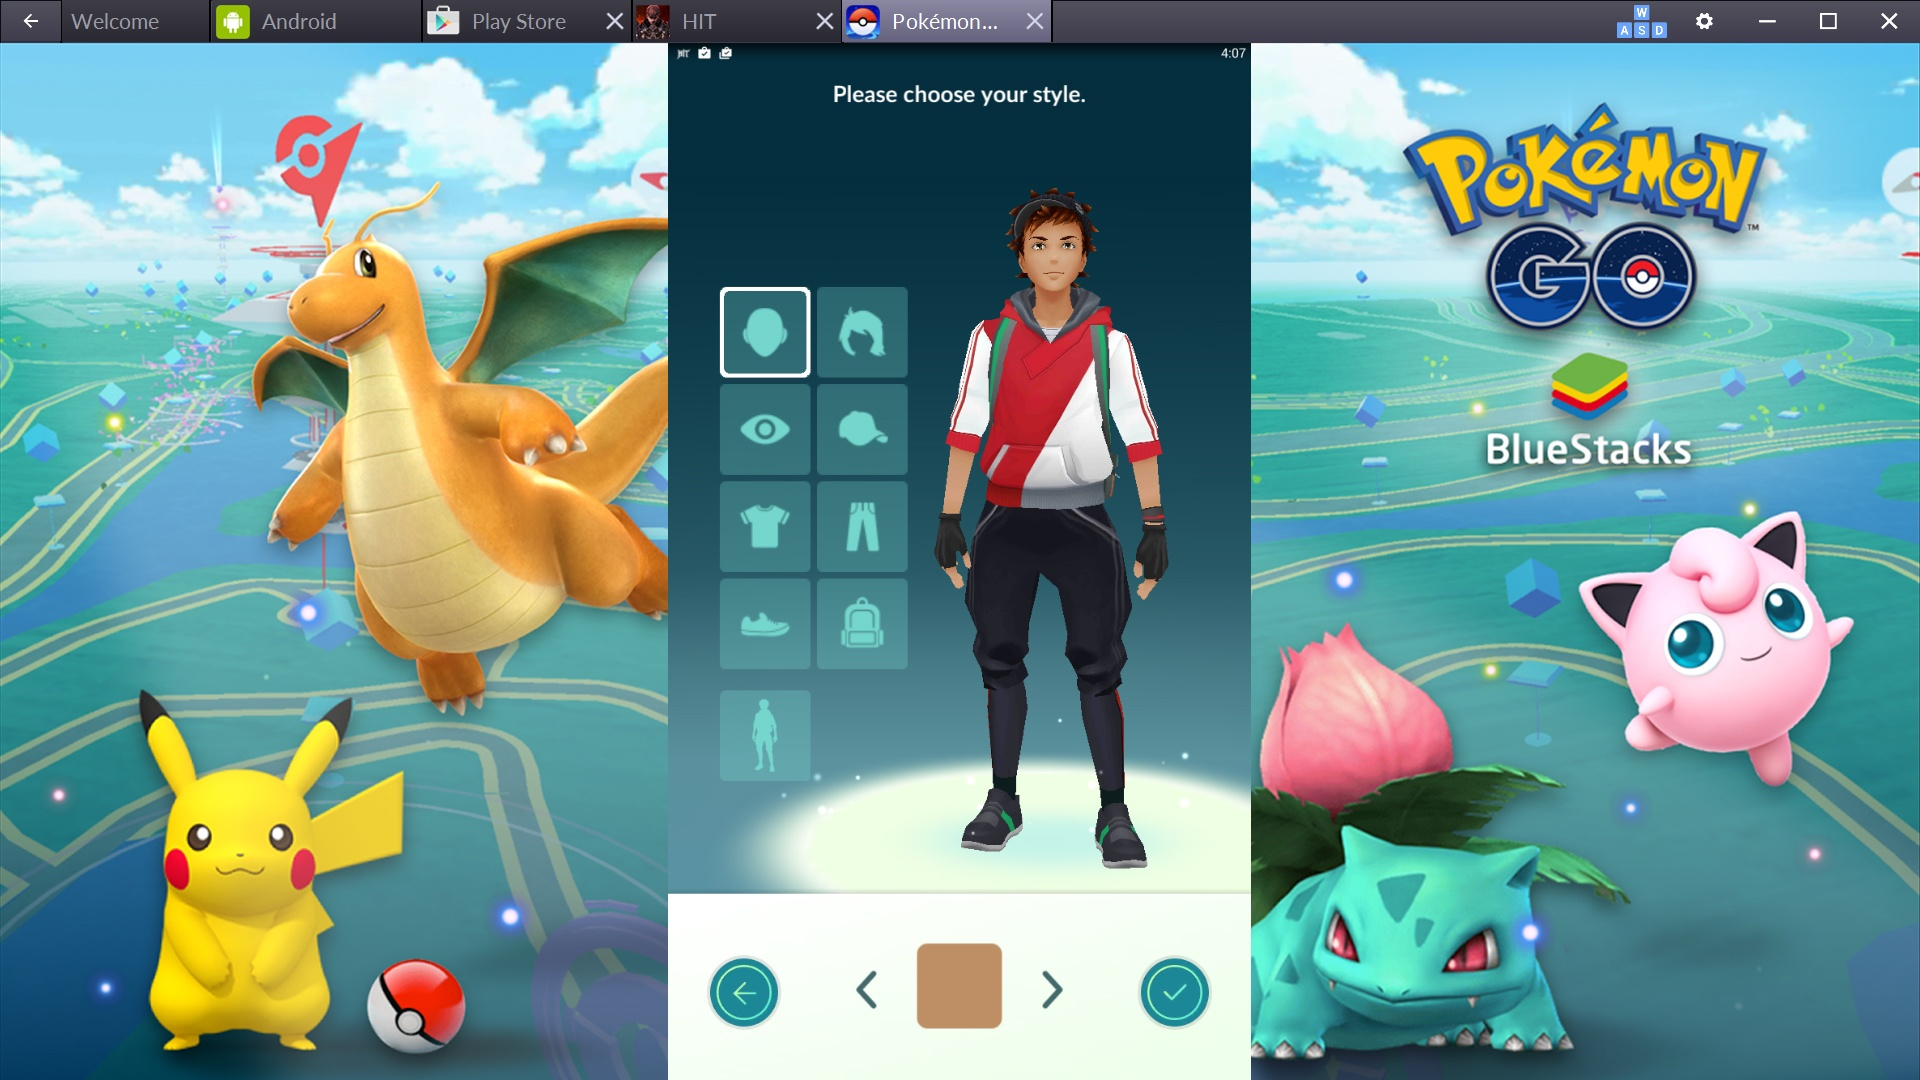 Pokémon GO gets update, some maps apps die while others prevail